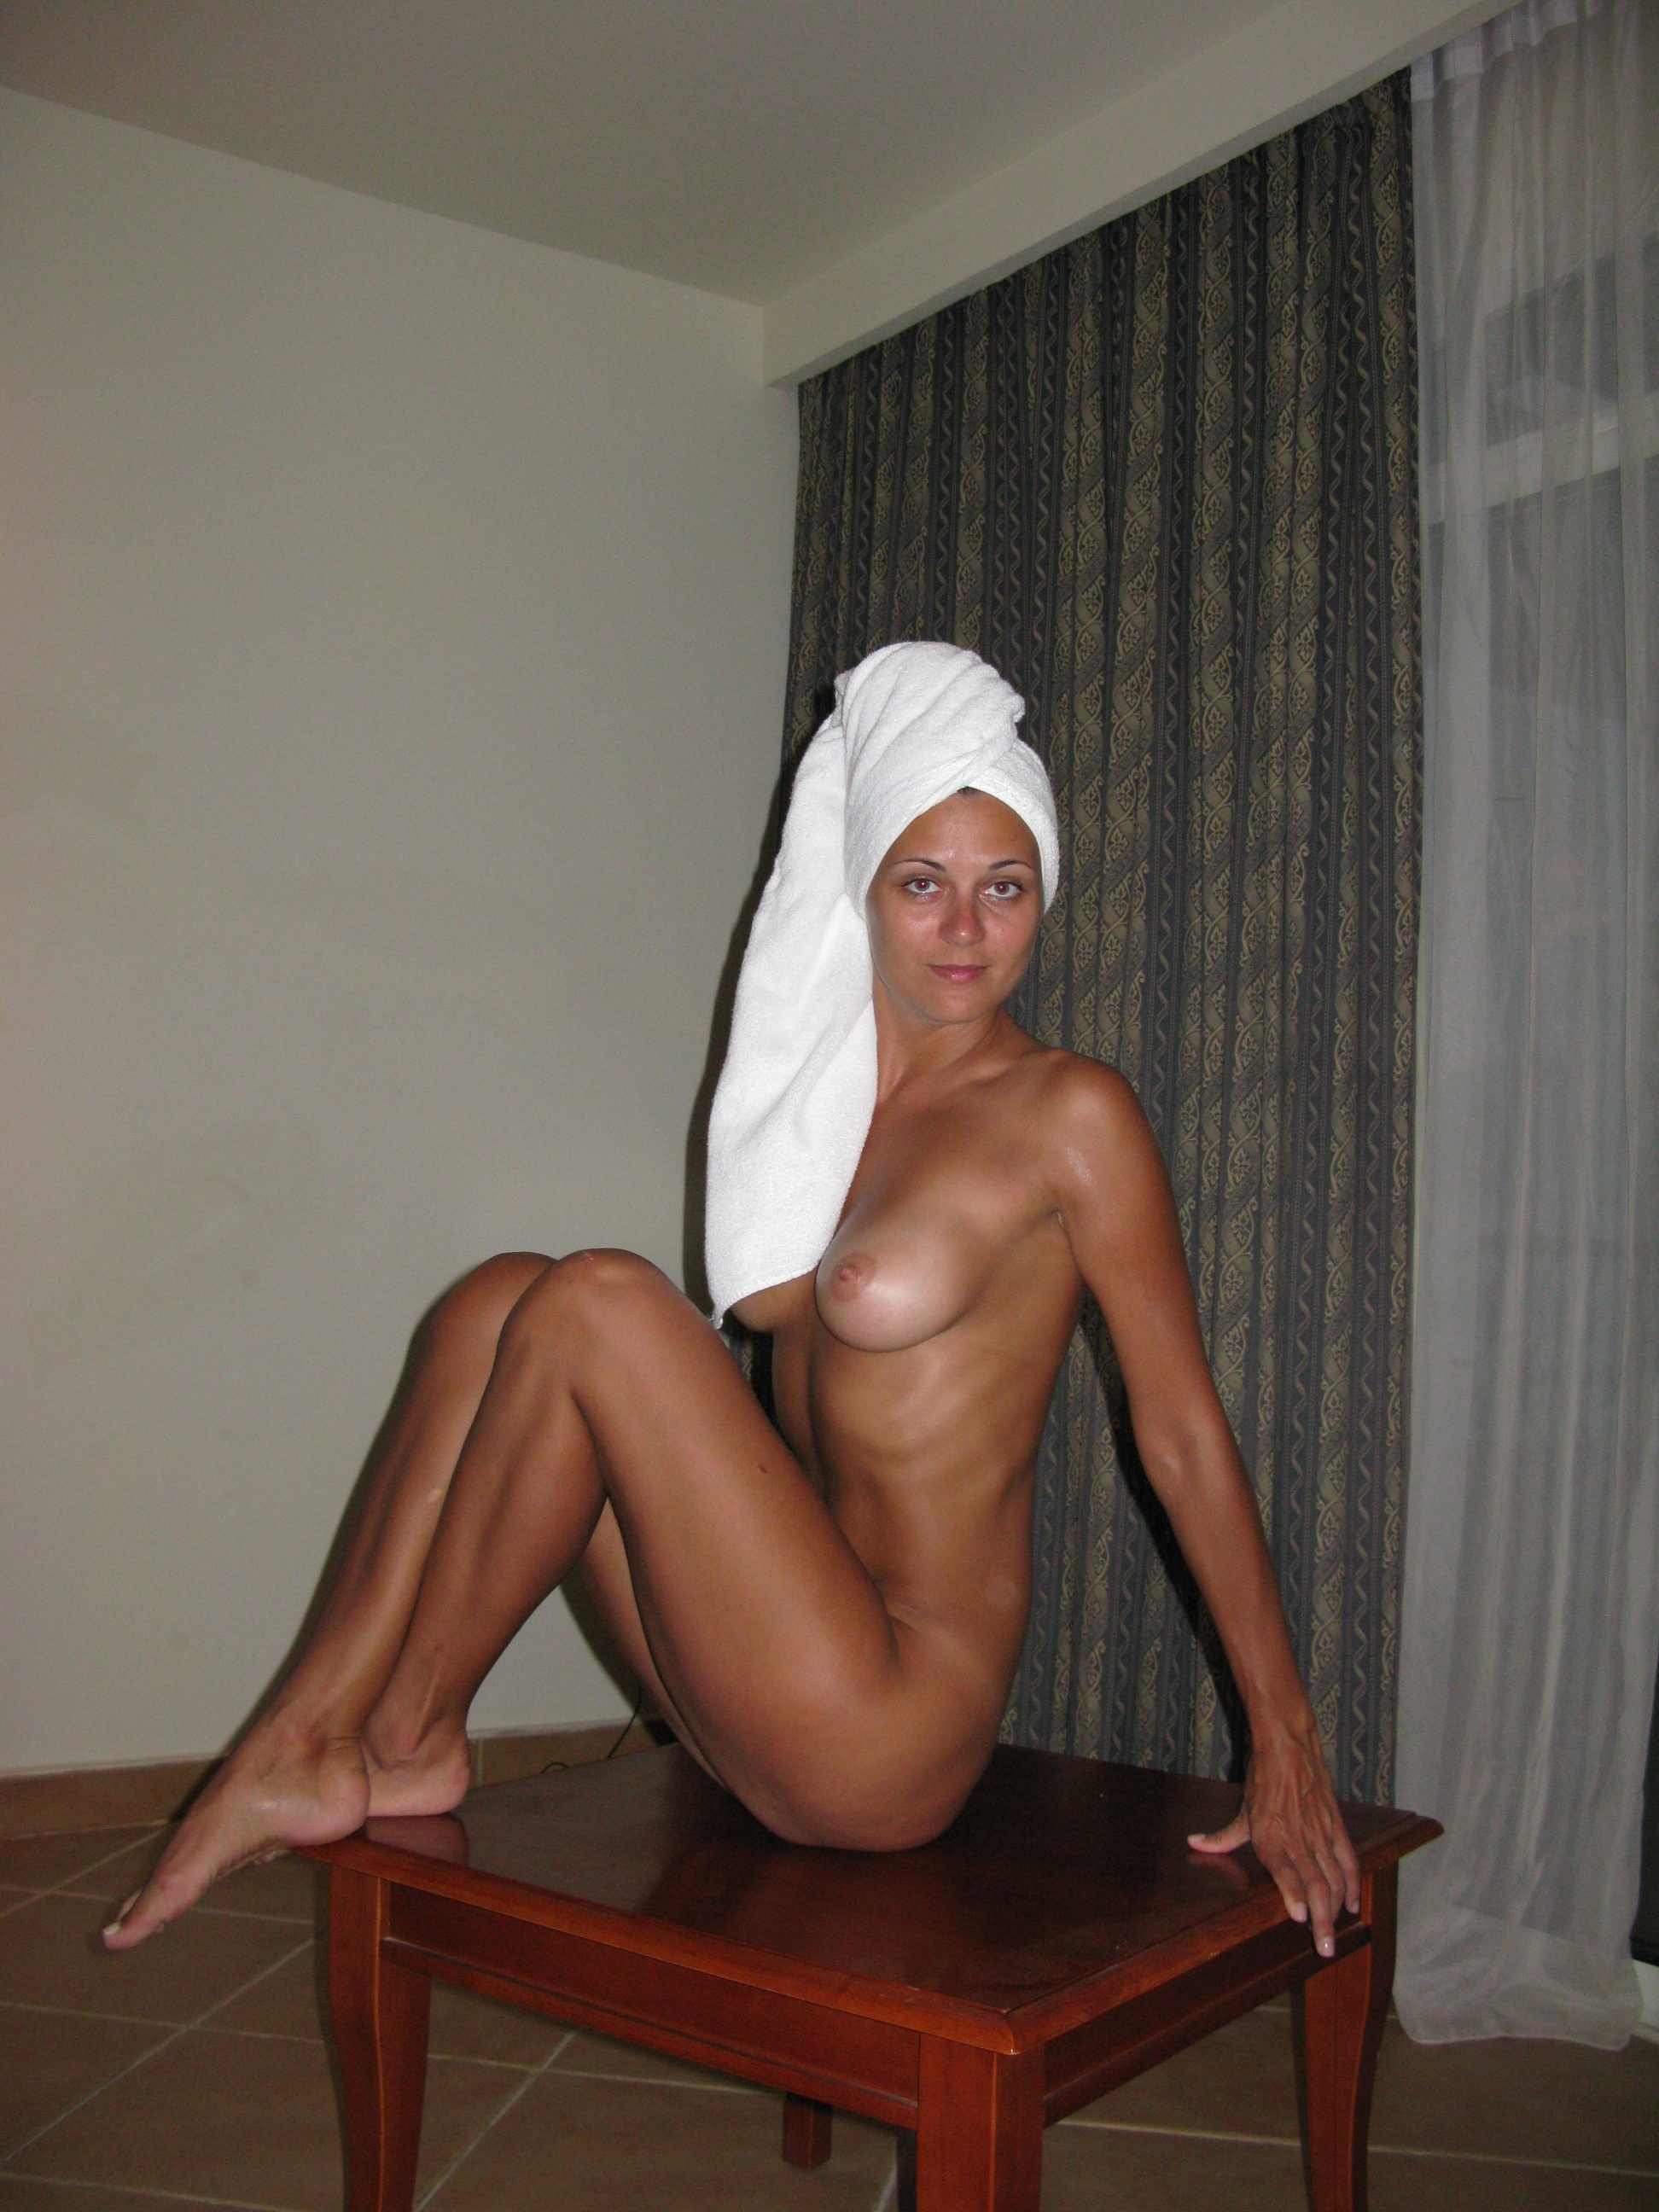 wife perfect nude Amateur body